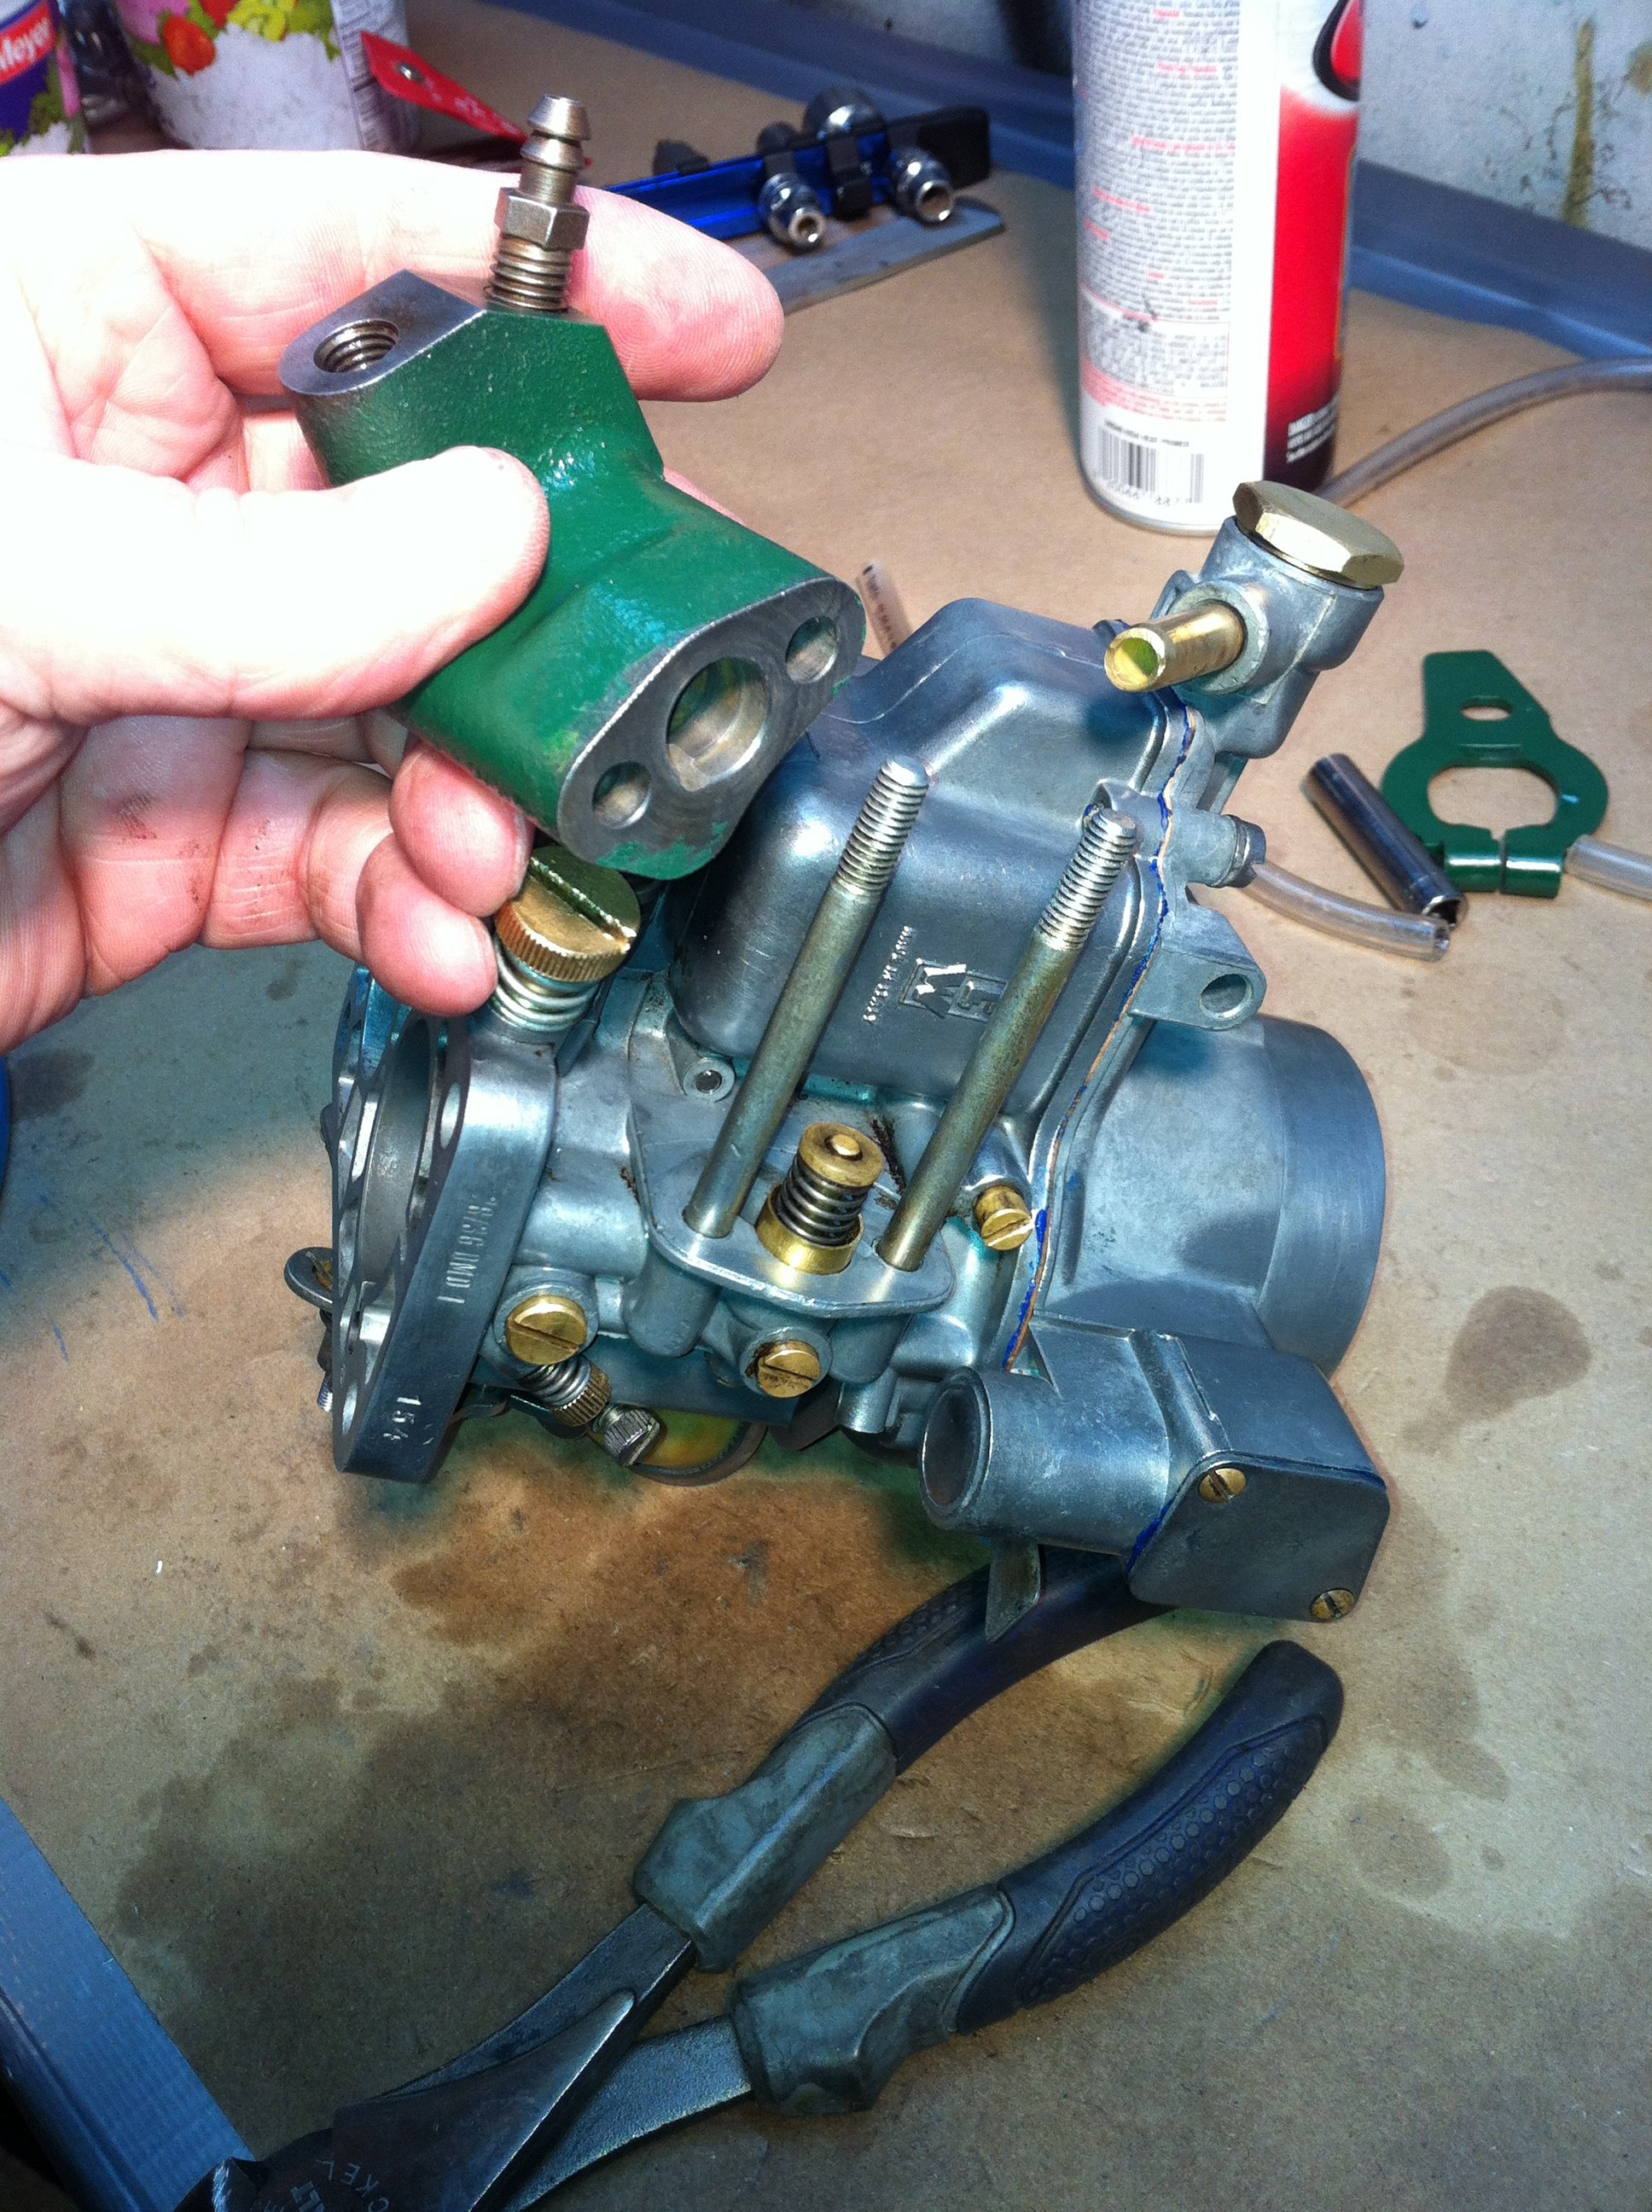 Some help from Steve Hammond was key in understanding and assembling the idling valve body onto the carburetor